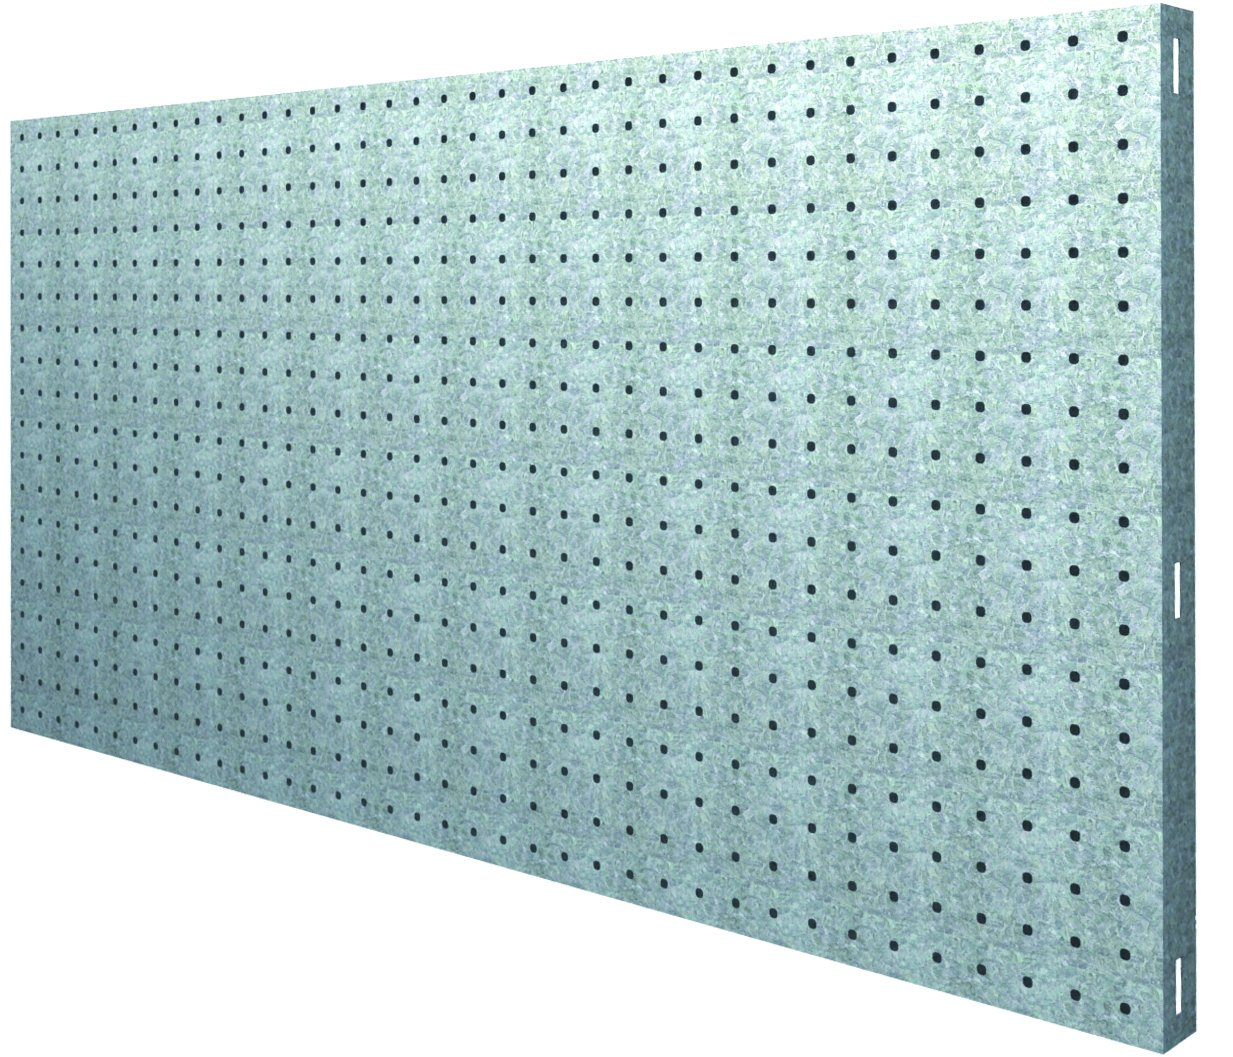 1200 x 600 mm Galvanizado SimonRack SI913 Kit Estanter/ía